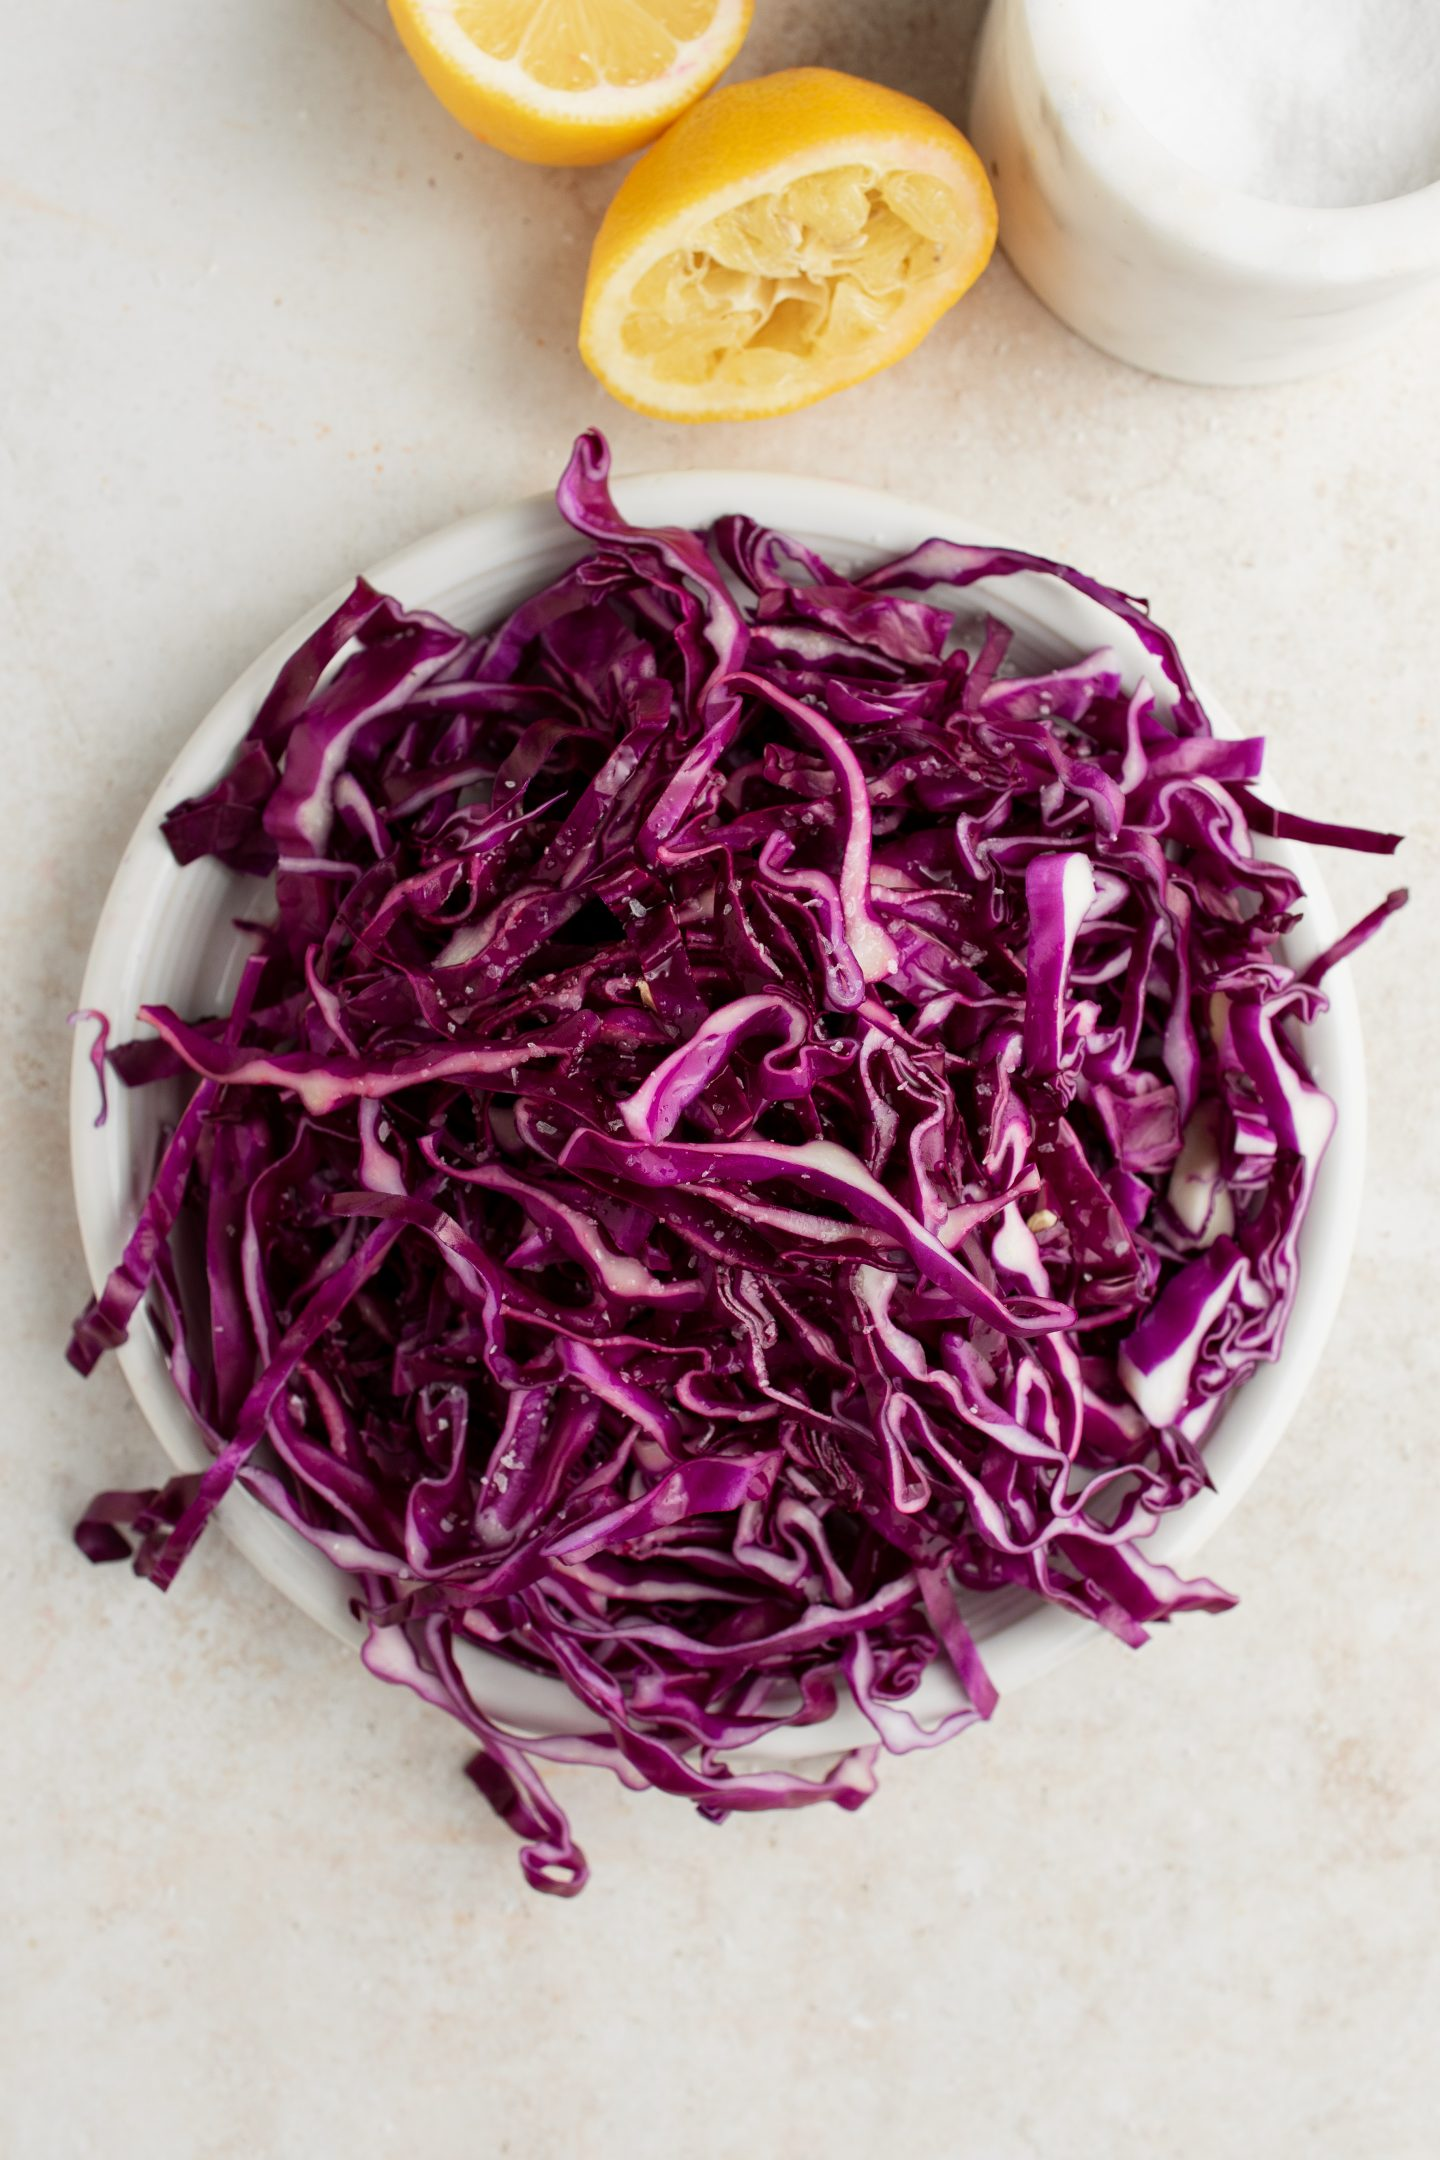 pickling red cabbage